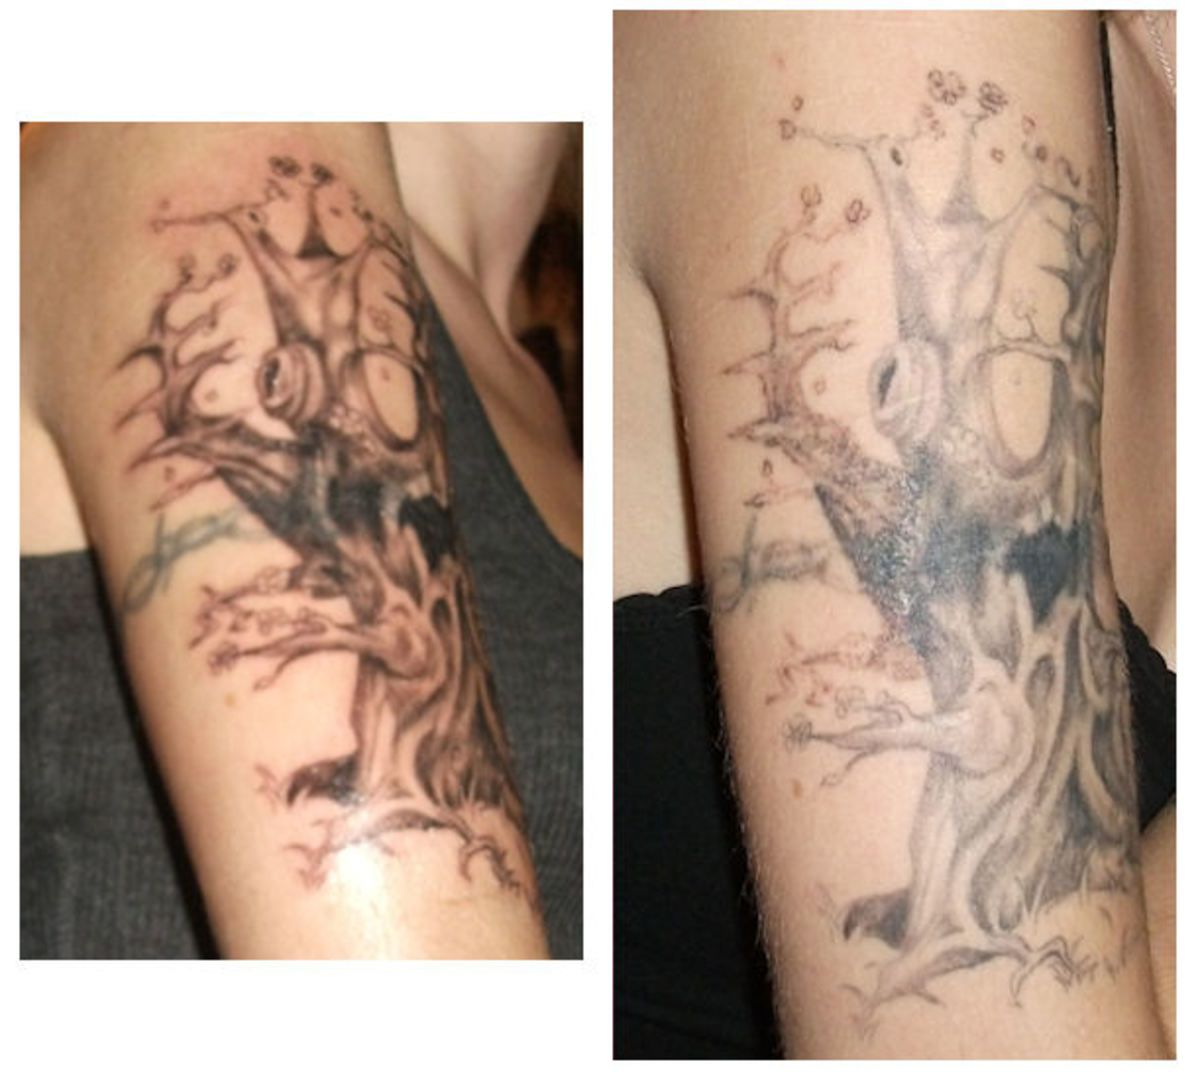 Side by side comparison. The difference is awesome. On the left is the first day I got the tat, on the right is about 2+ months of constantly using my creams and doing laser treatment.